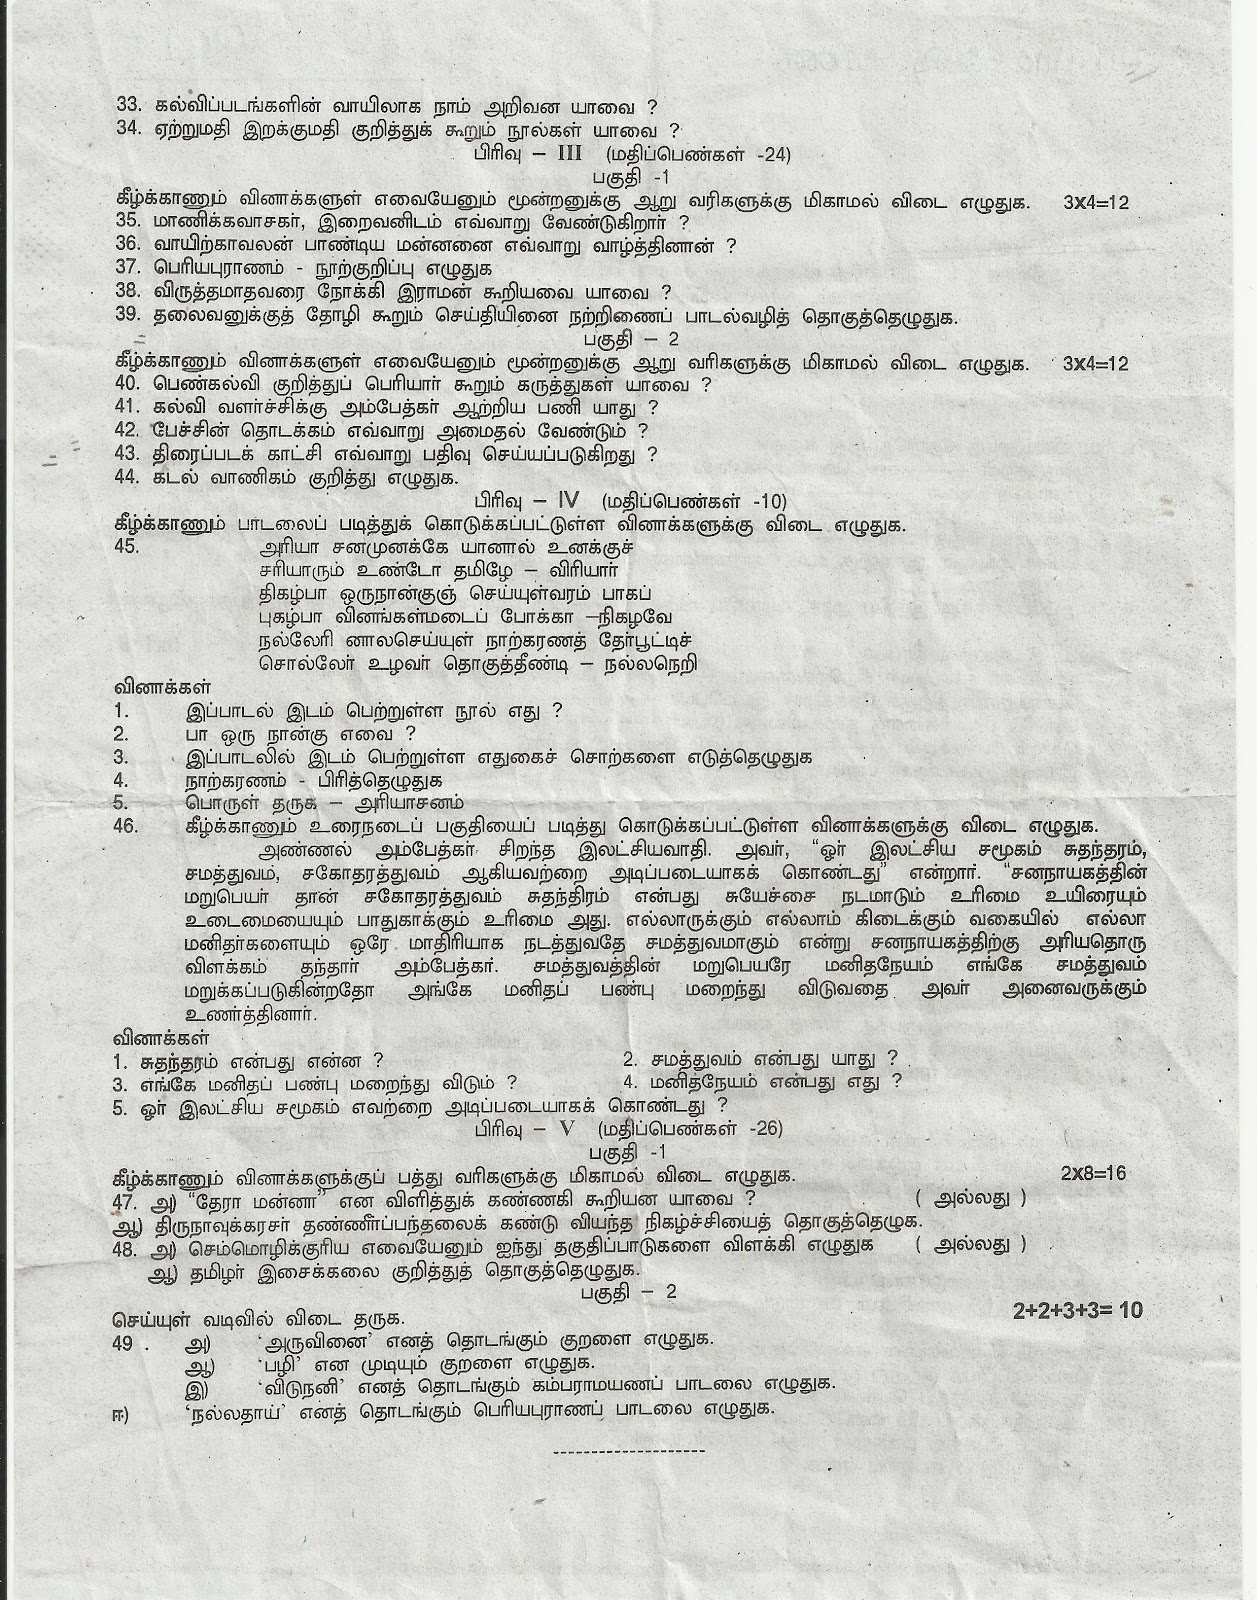 10th Standard Government Public Question Papers Quarterly Public Examination Question Papers